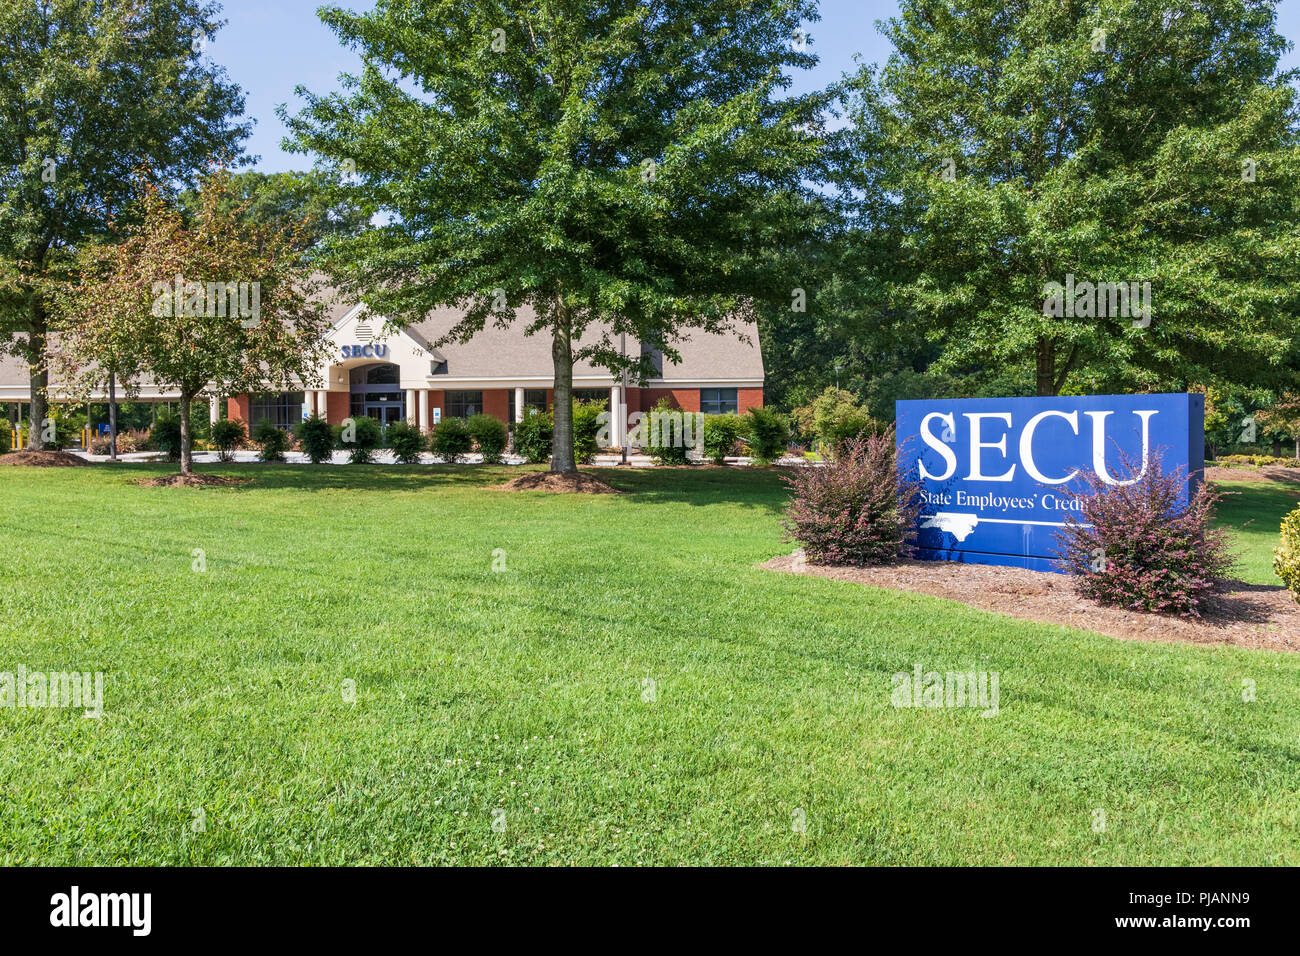 HICKORY, NC, USA--9/2/18: A branch of the North Carolina State Employees' Credit Union. - Stock Image